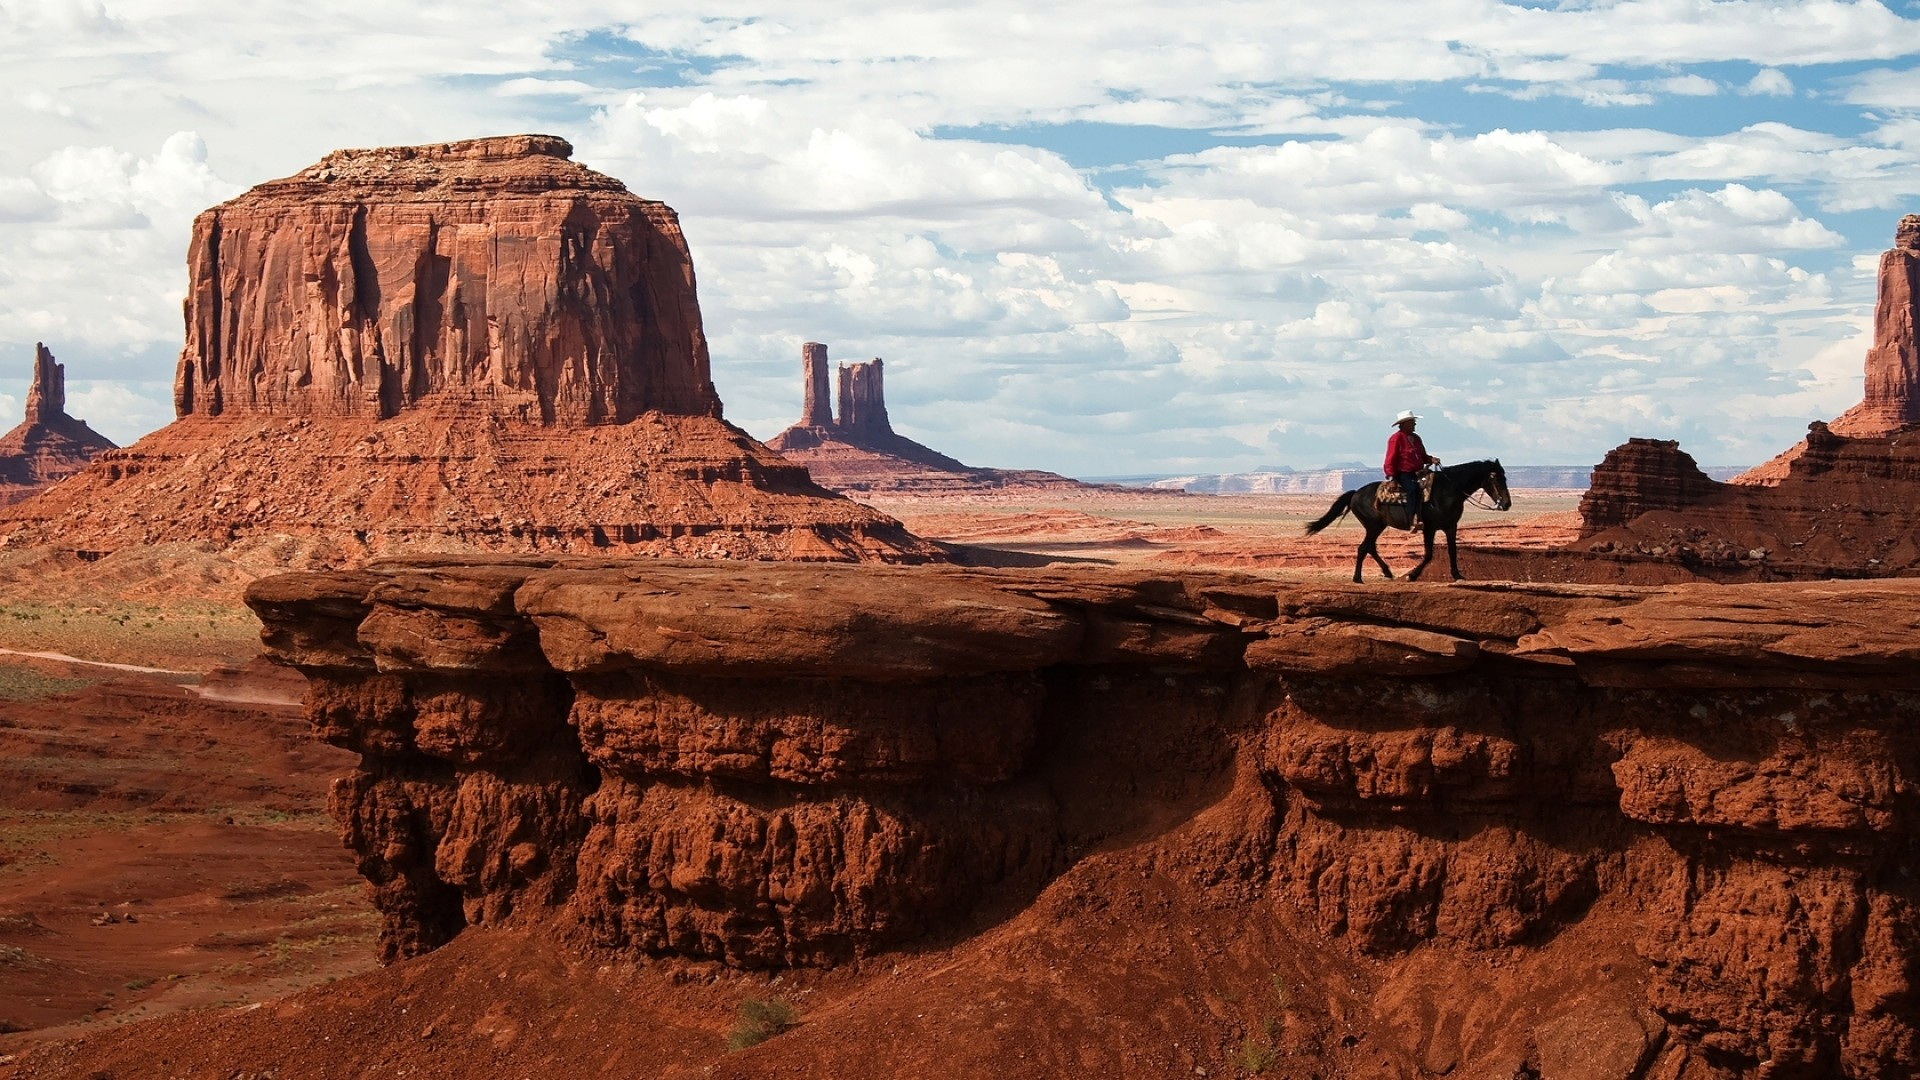 Res: 1920x1080, HD Western Cowboy Wallpapers and Photos,  - By Jamee Ringdahl